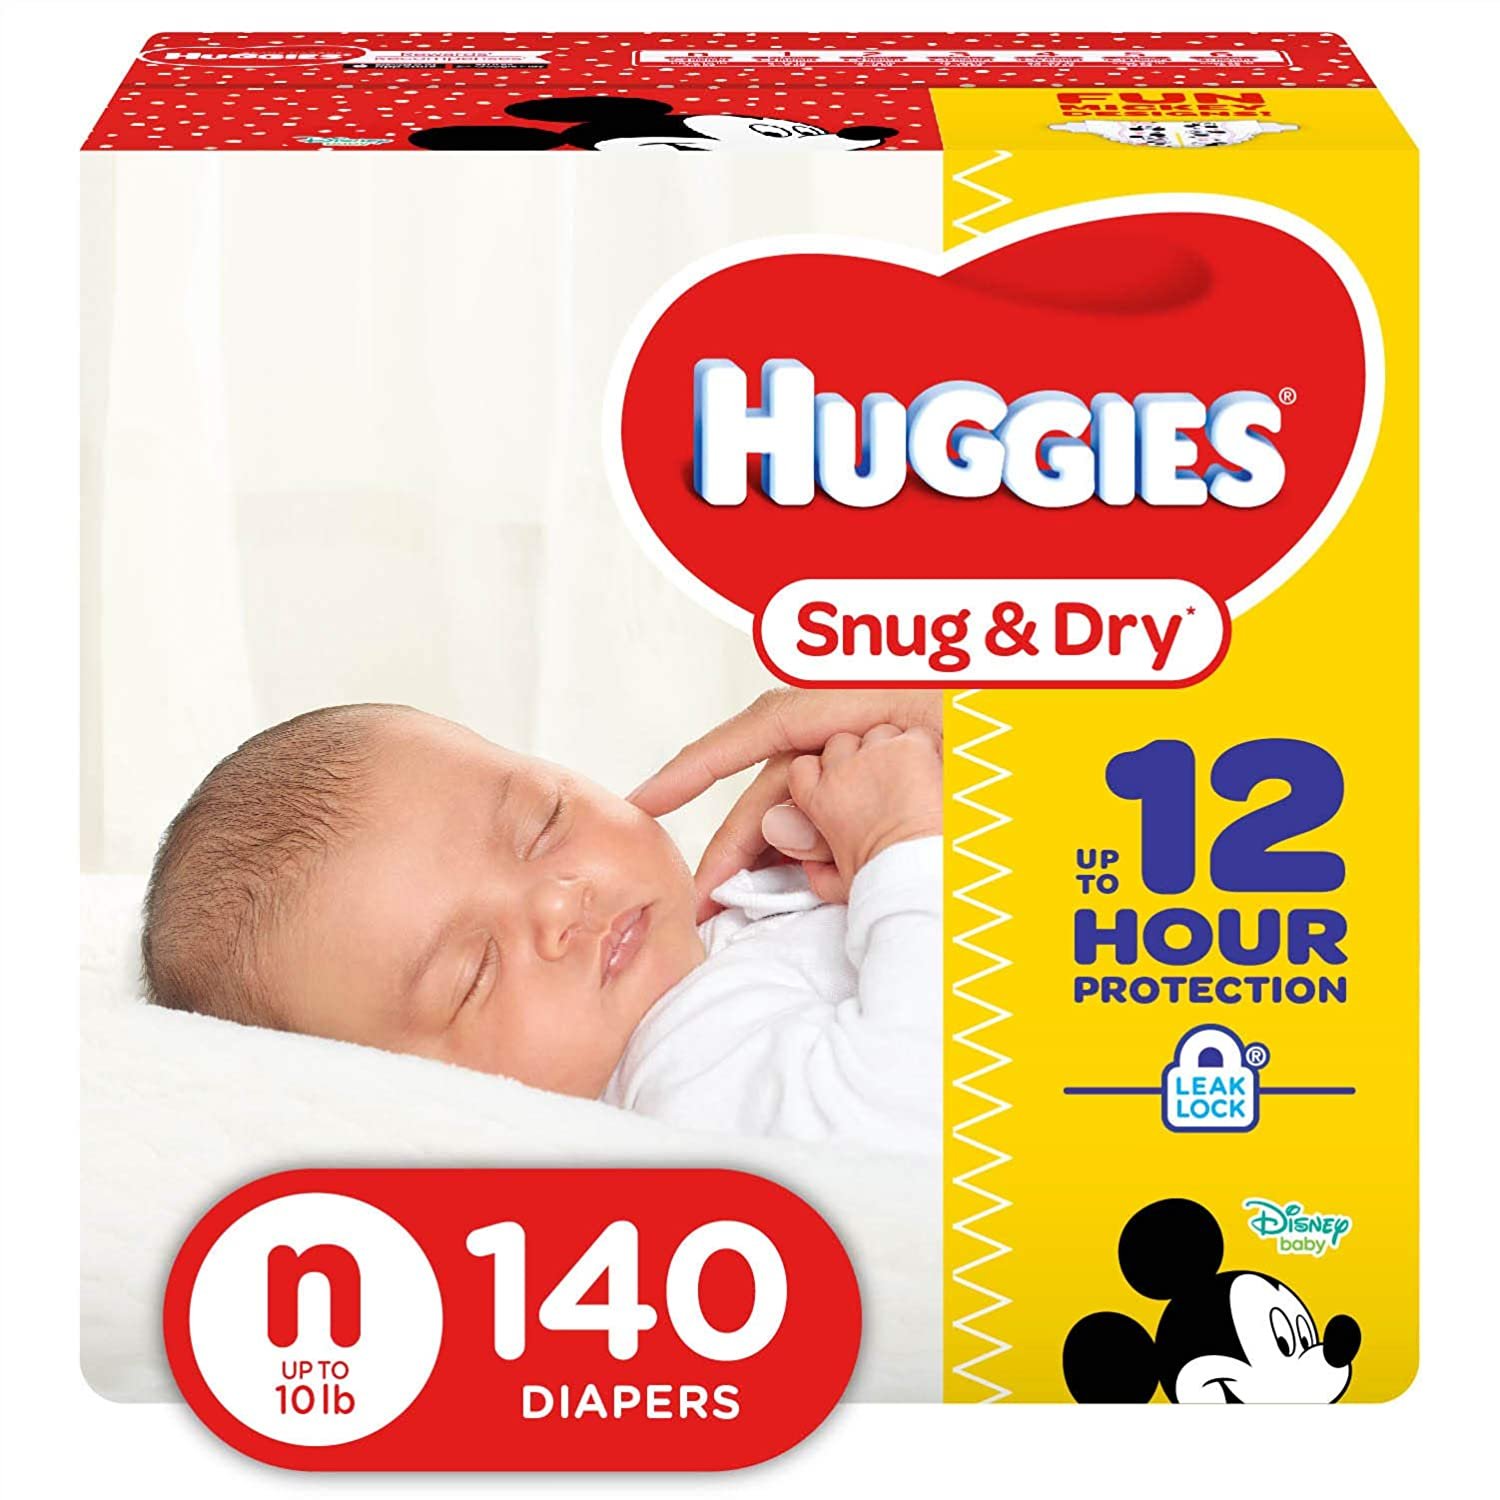 HUGGIES Snug & Dry Diapers, Size Newborn